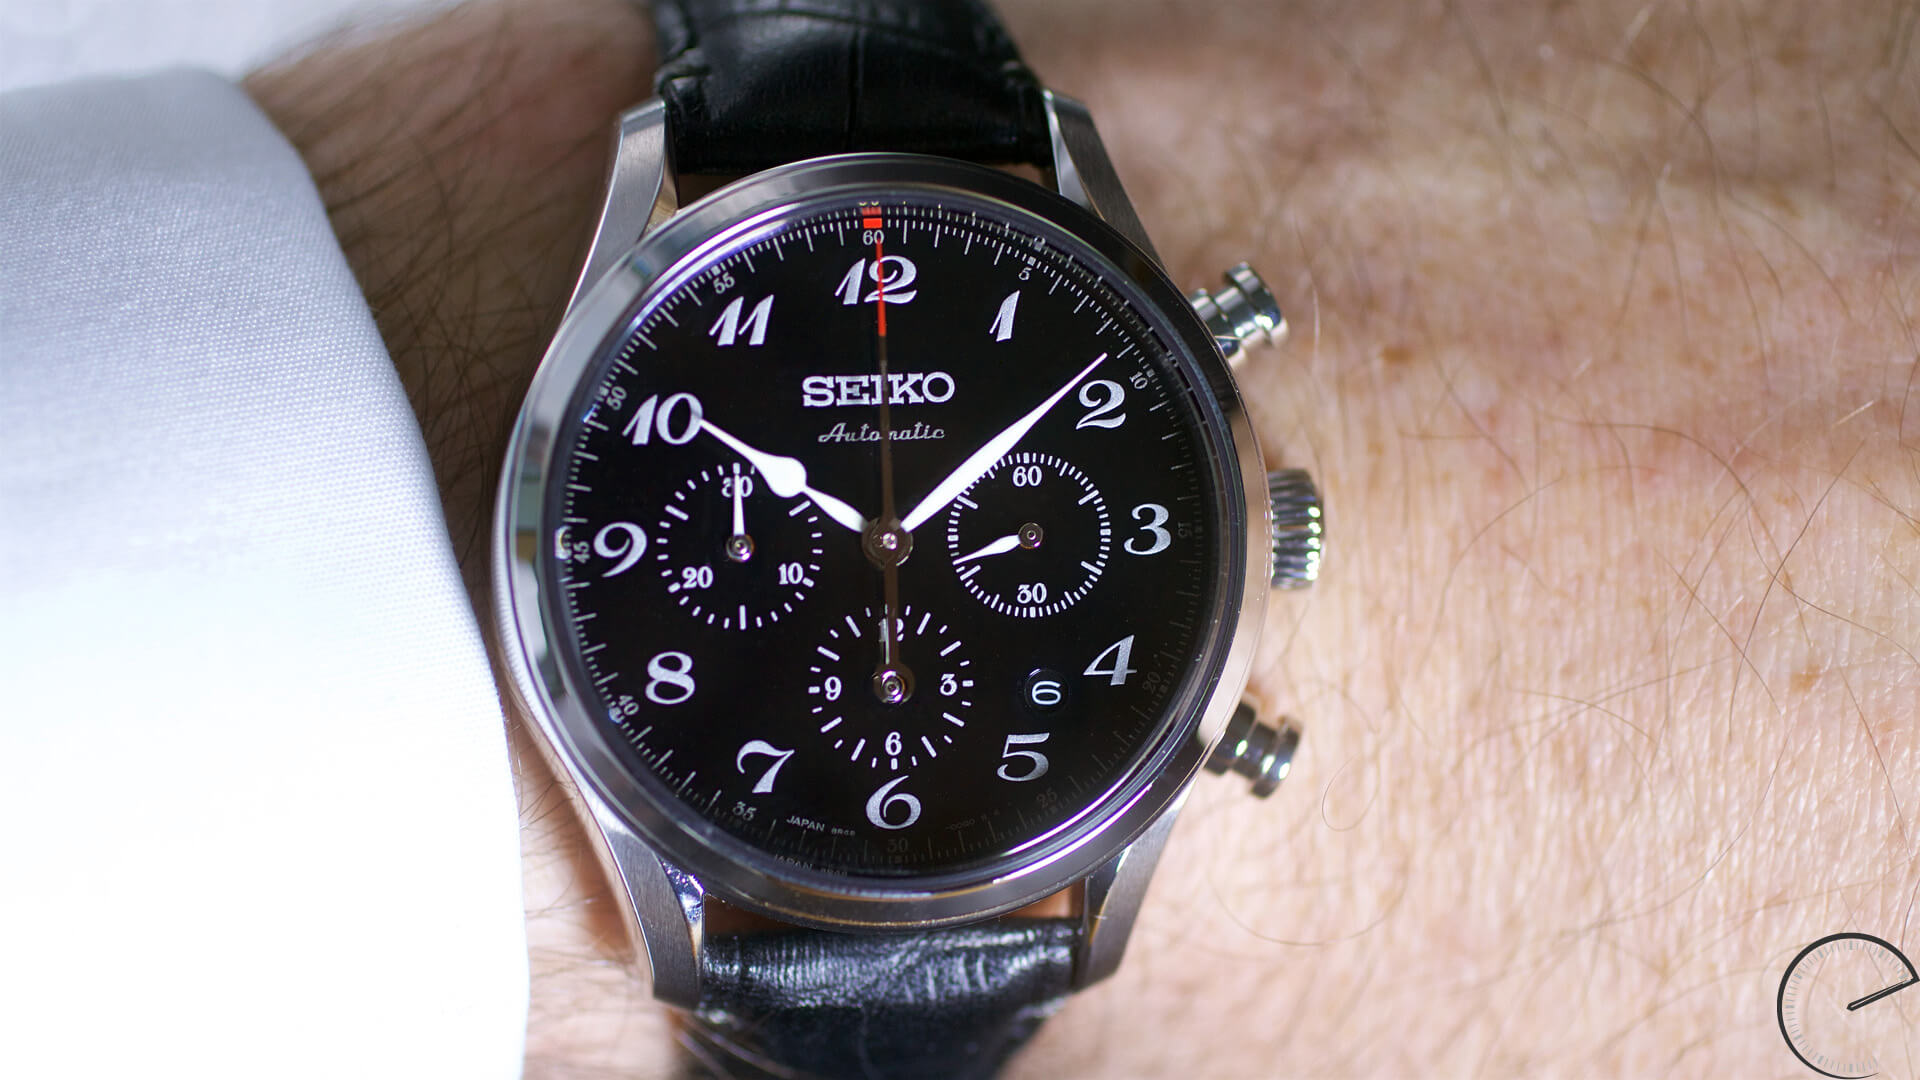 Seiko_Presage_60th_Anniversary_Chronograph_SRQ021_wrist1 - ESCAPEMENT magazine - haute horlogerie website